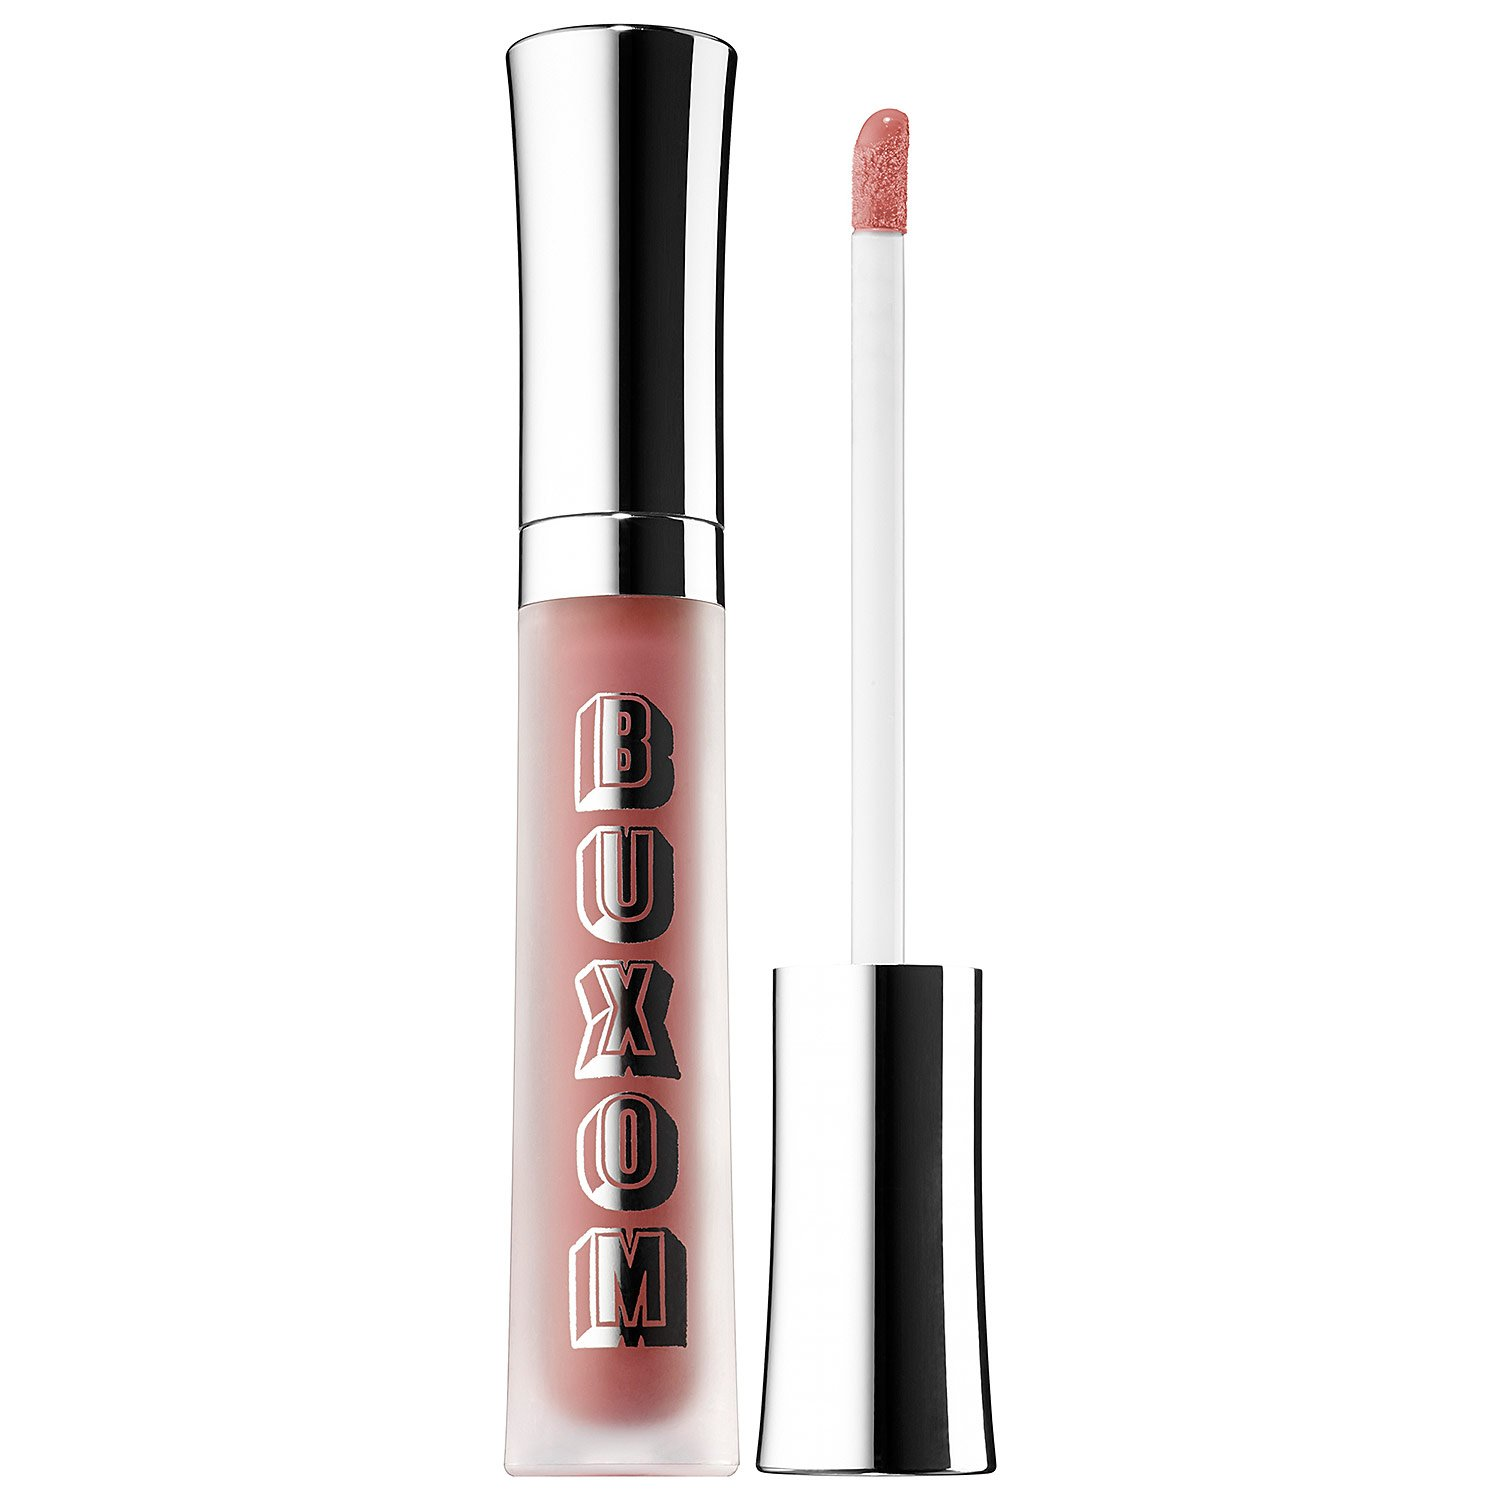 Lips Off Leash Plumping 15-piece Mini Lip Collection by Buxom #12